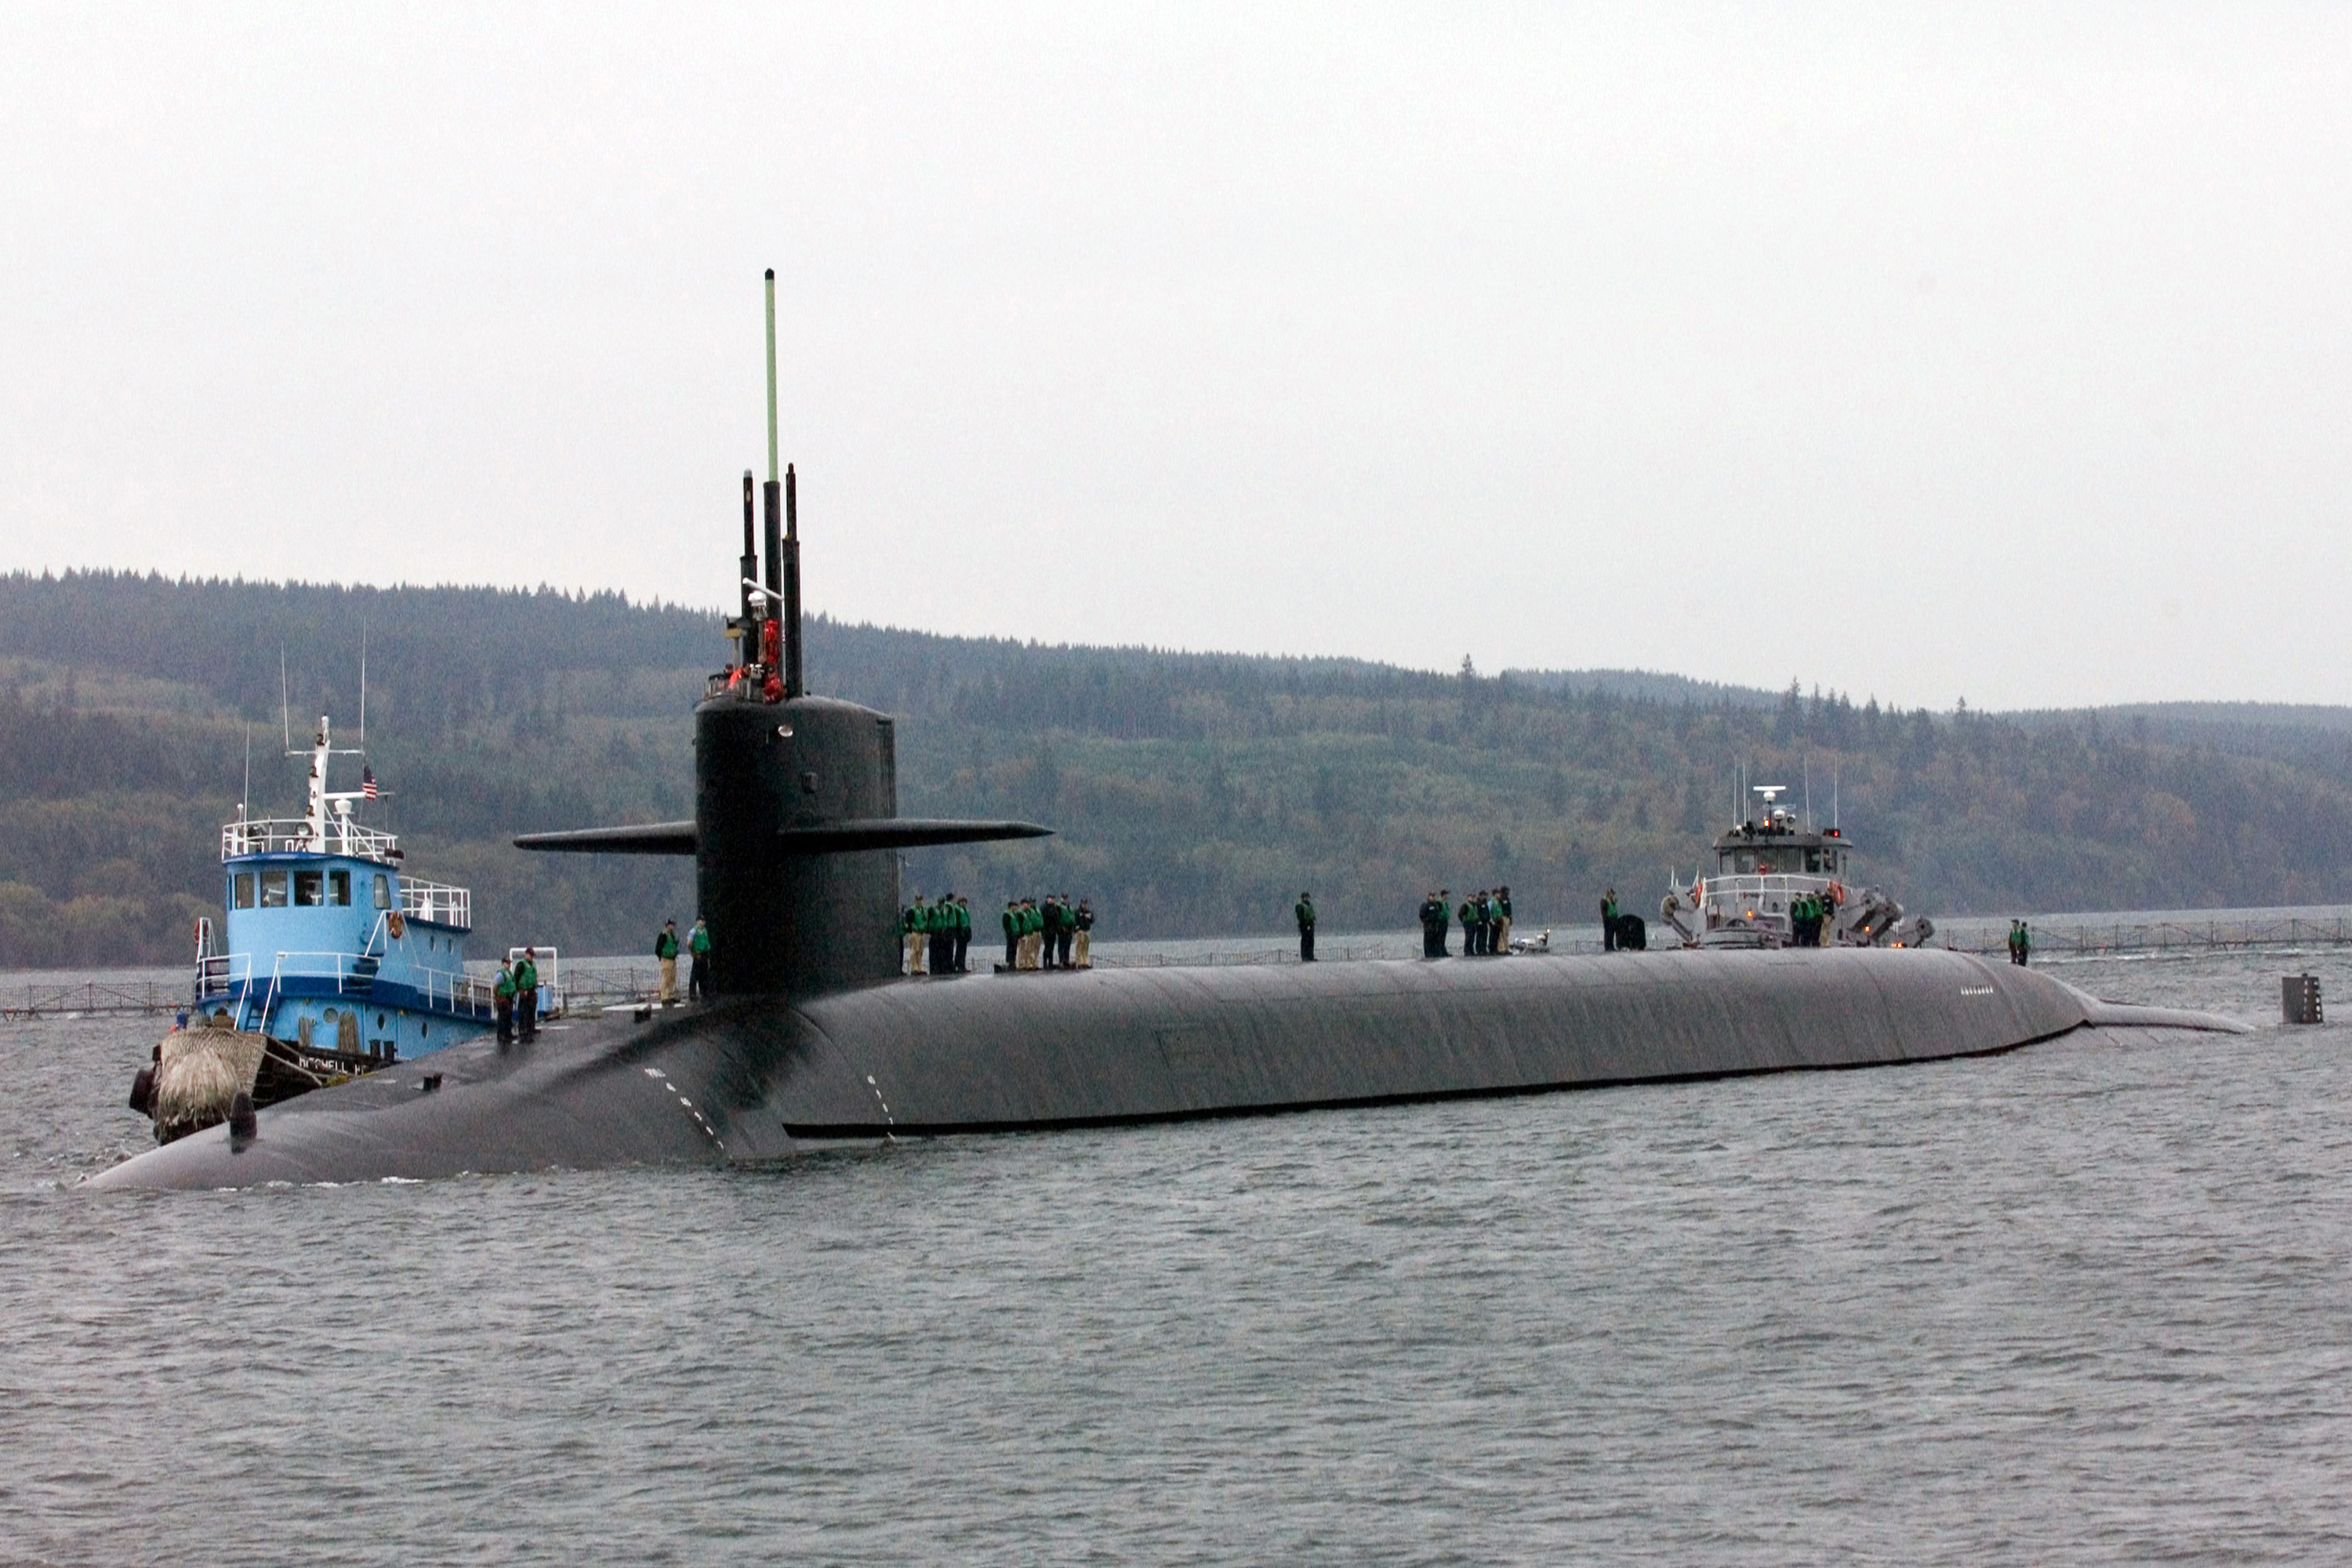 The USS Louisiana (SSBN743) is arriving for the first time at their new homeport at Naval Base Kitsap, Silverdale, Washington,on October 12, 2005. The USS Louisiana was formerly homeported at Kings Bay, Georgia. US Navy (Photo of the USS Louisiana by Brian Nokell, NBK Visual Information, via Wikimedia Commons)